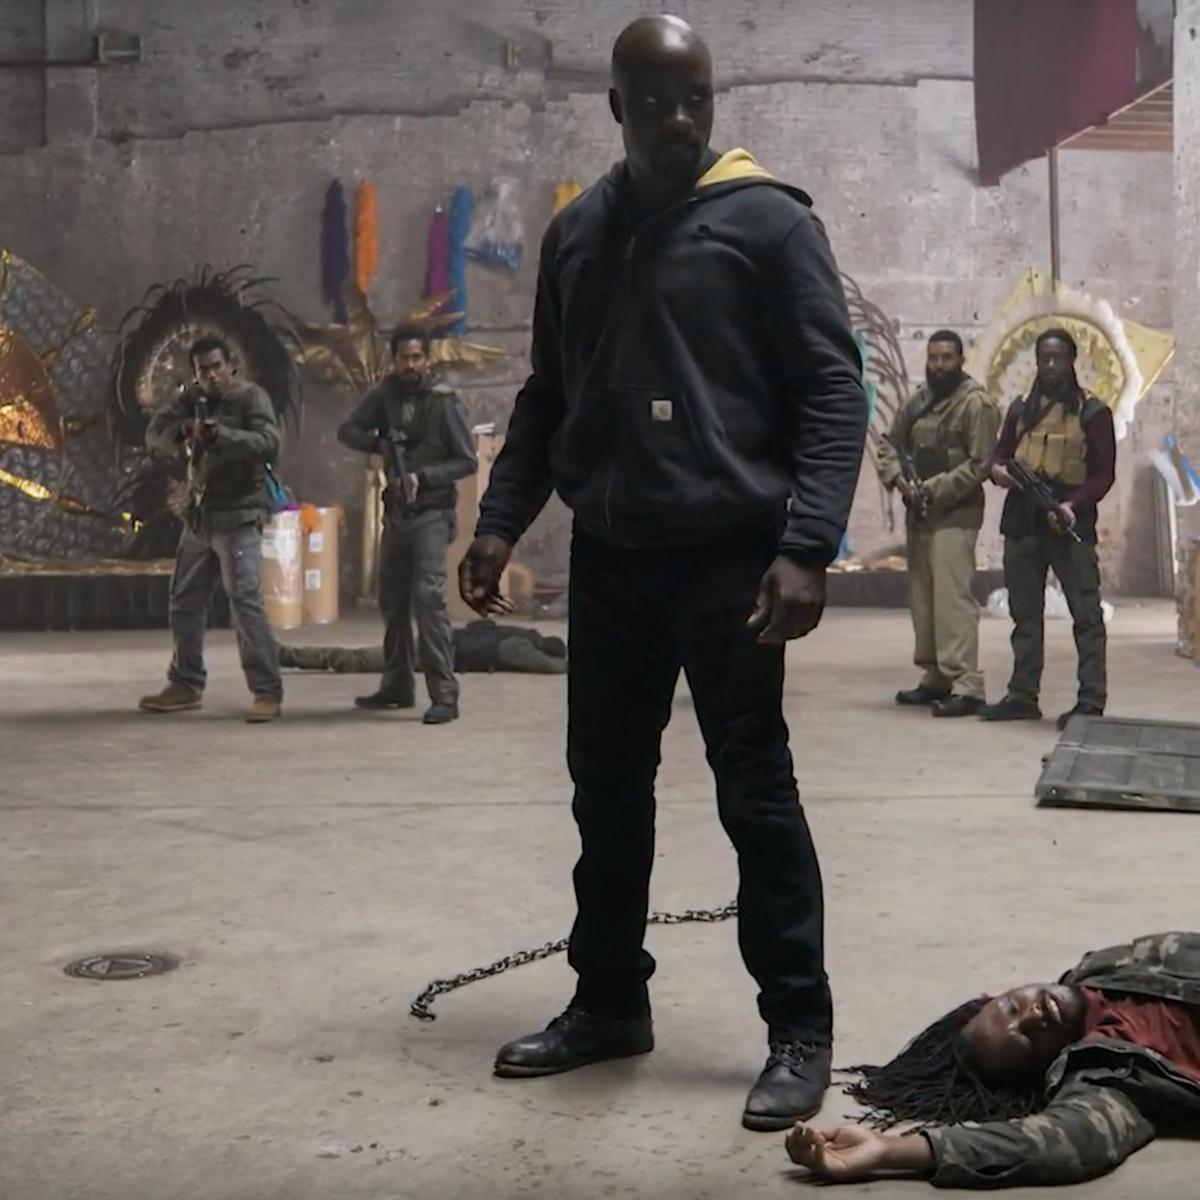 Netflix cancels 'Luke Cage' due to 'creative differences'